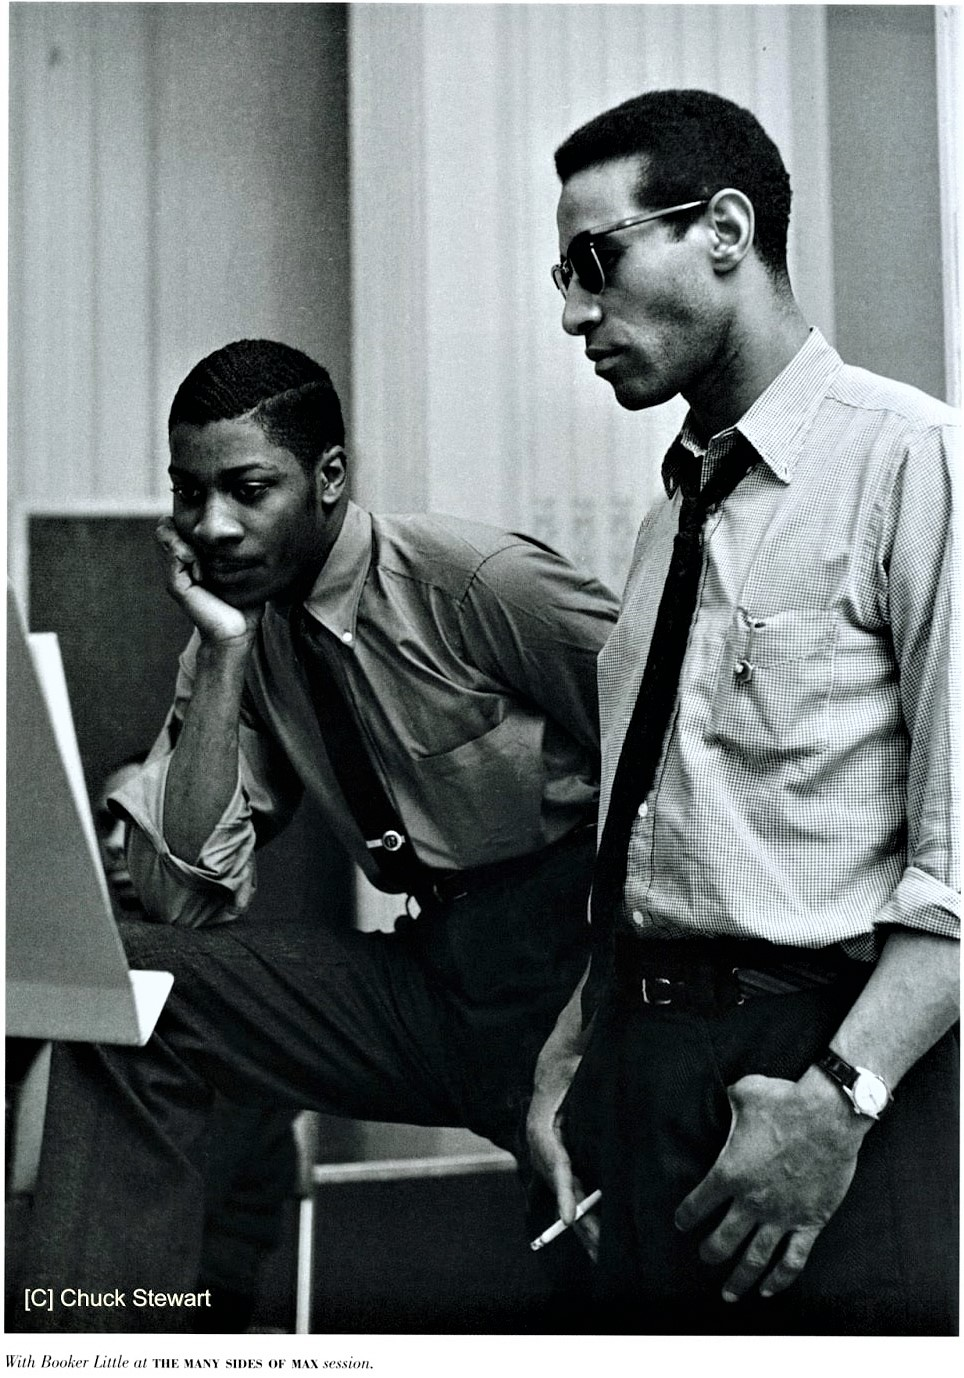 Booker Little and Max Roach